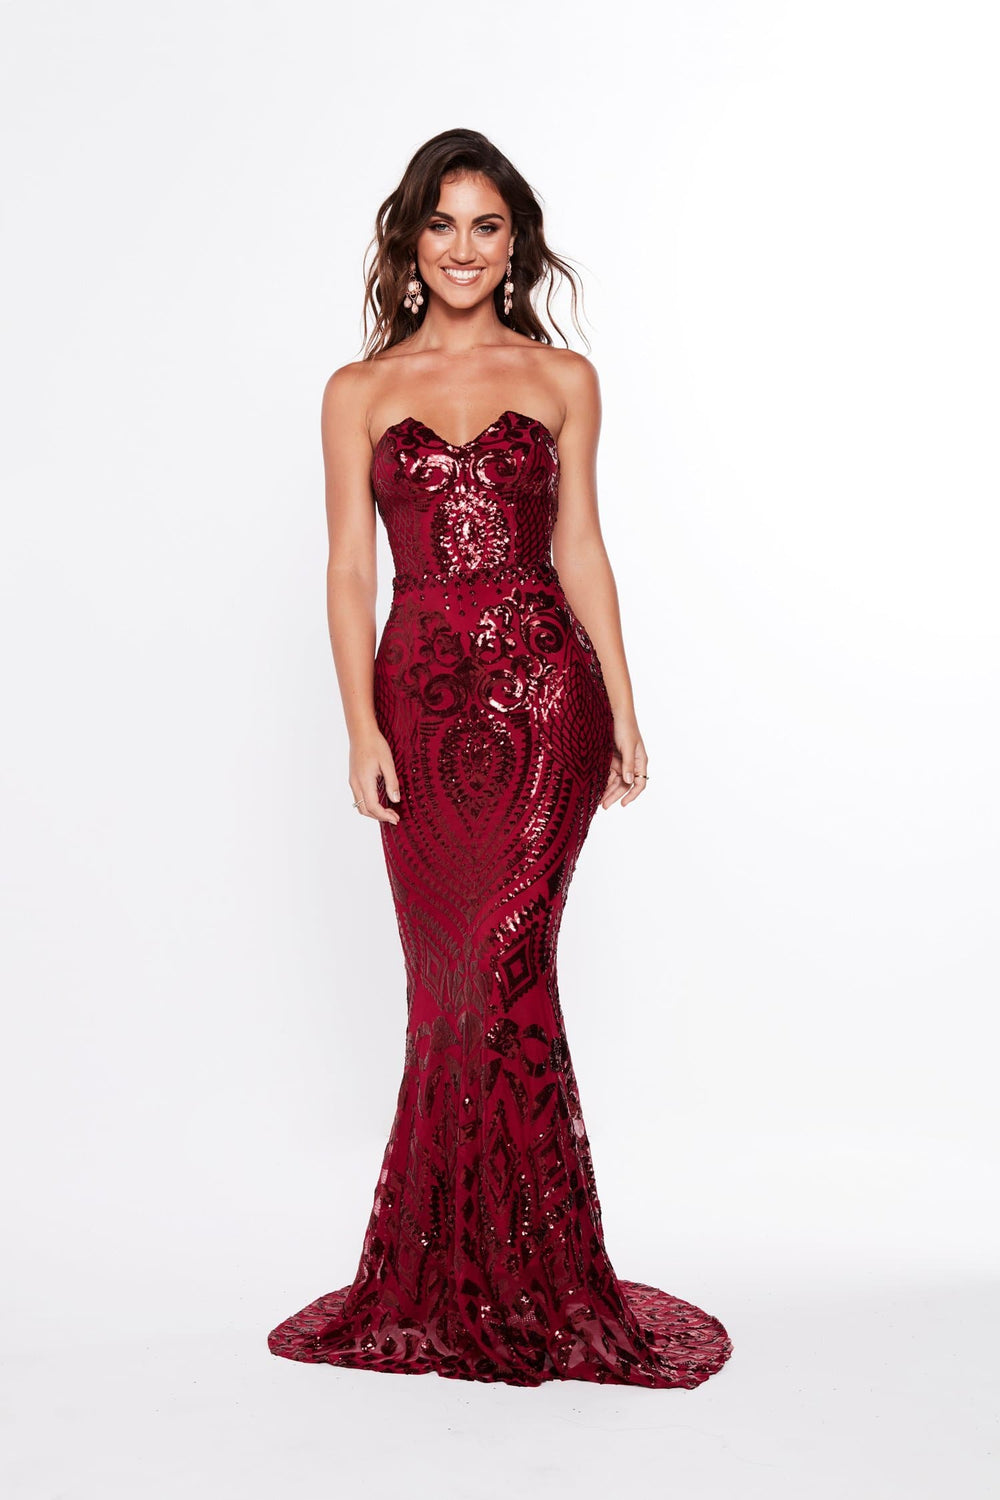 A&N Valery - Burgundy Sequin Gown with Mermaid Train